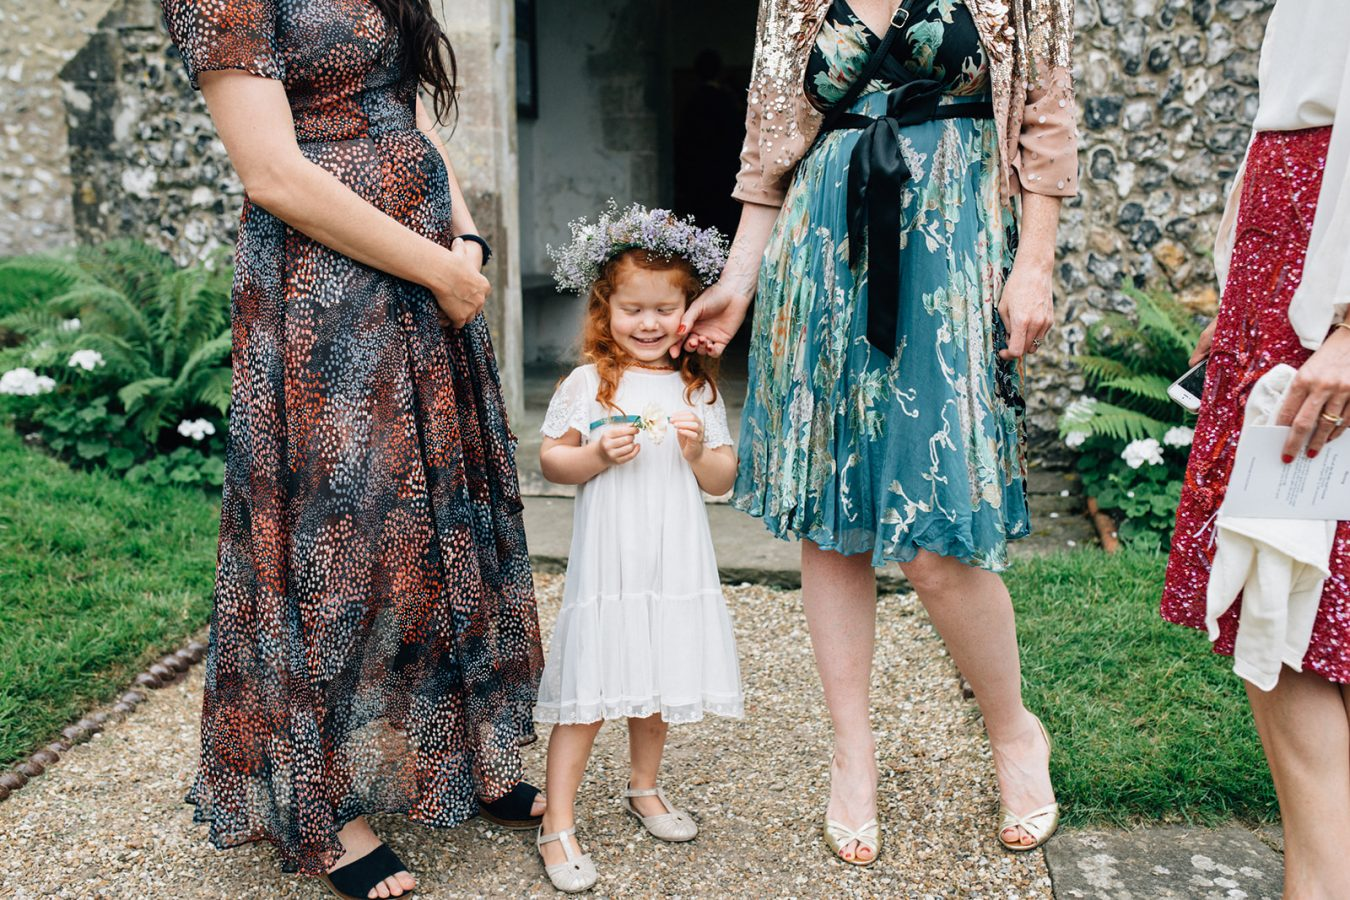 A little flower girl at a church near Canterbury in Kent for a Marquee Wedding photographed by natural style Kent Wedding Photographer Matilda Delves